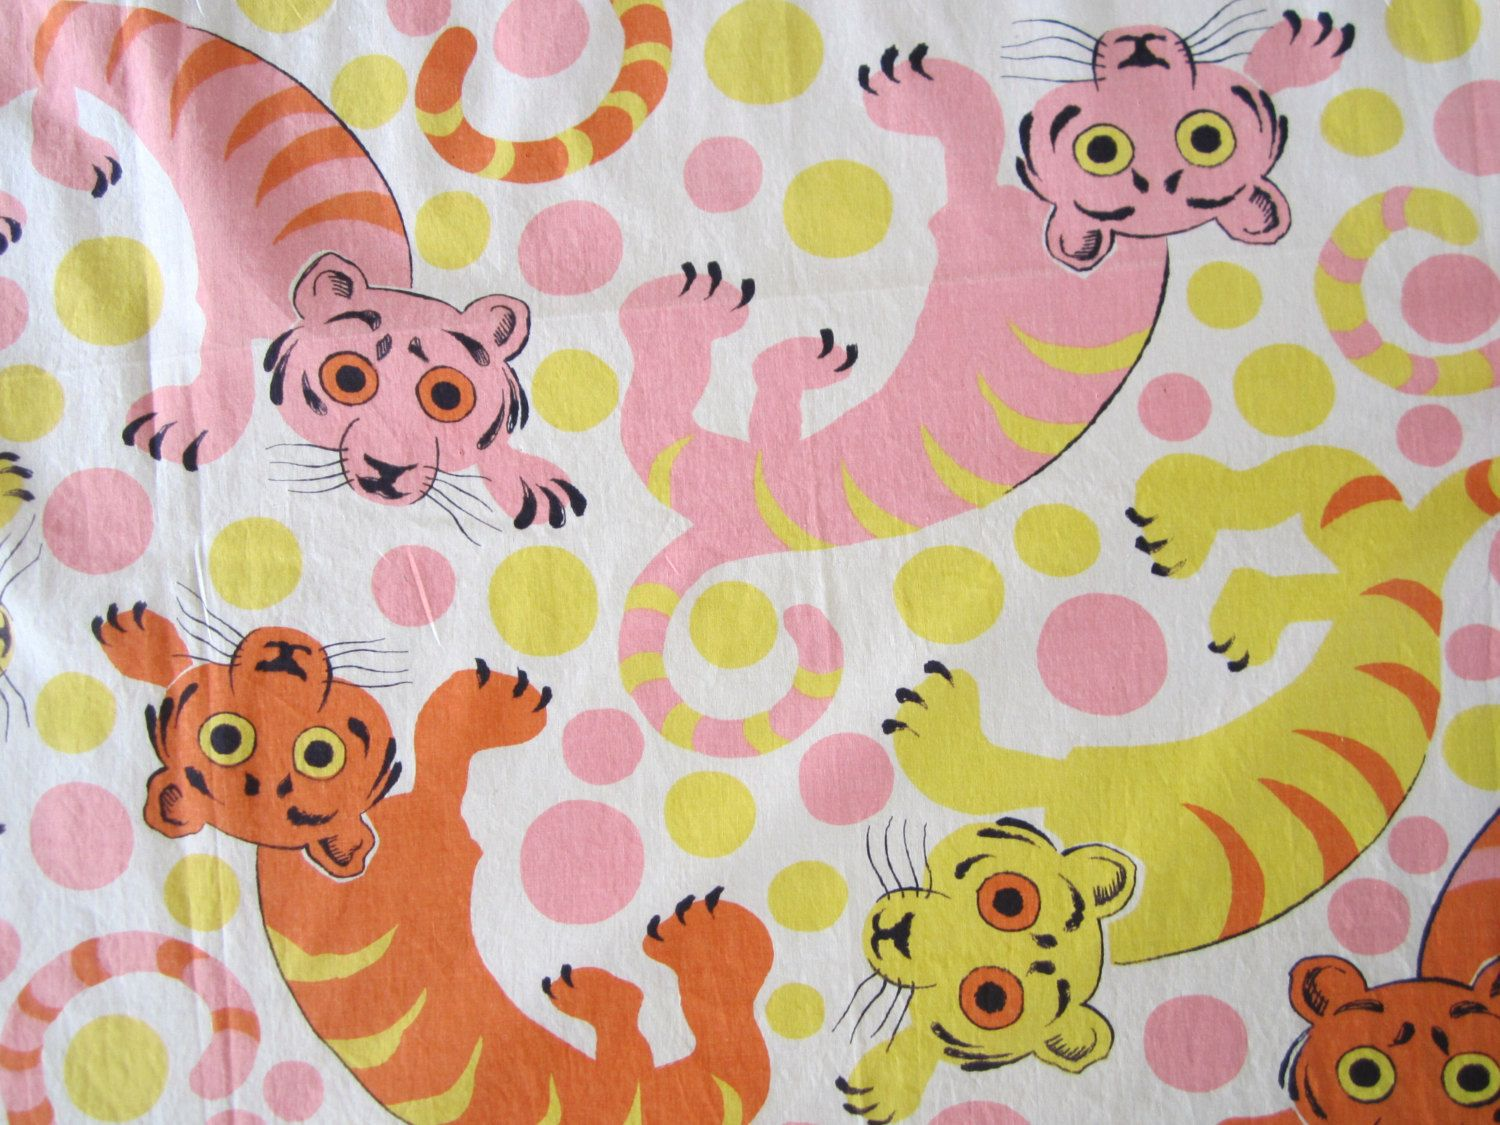 Vintage Fabric Mod Tigers 3 5 Yards Stuffed Animal Patterns